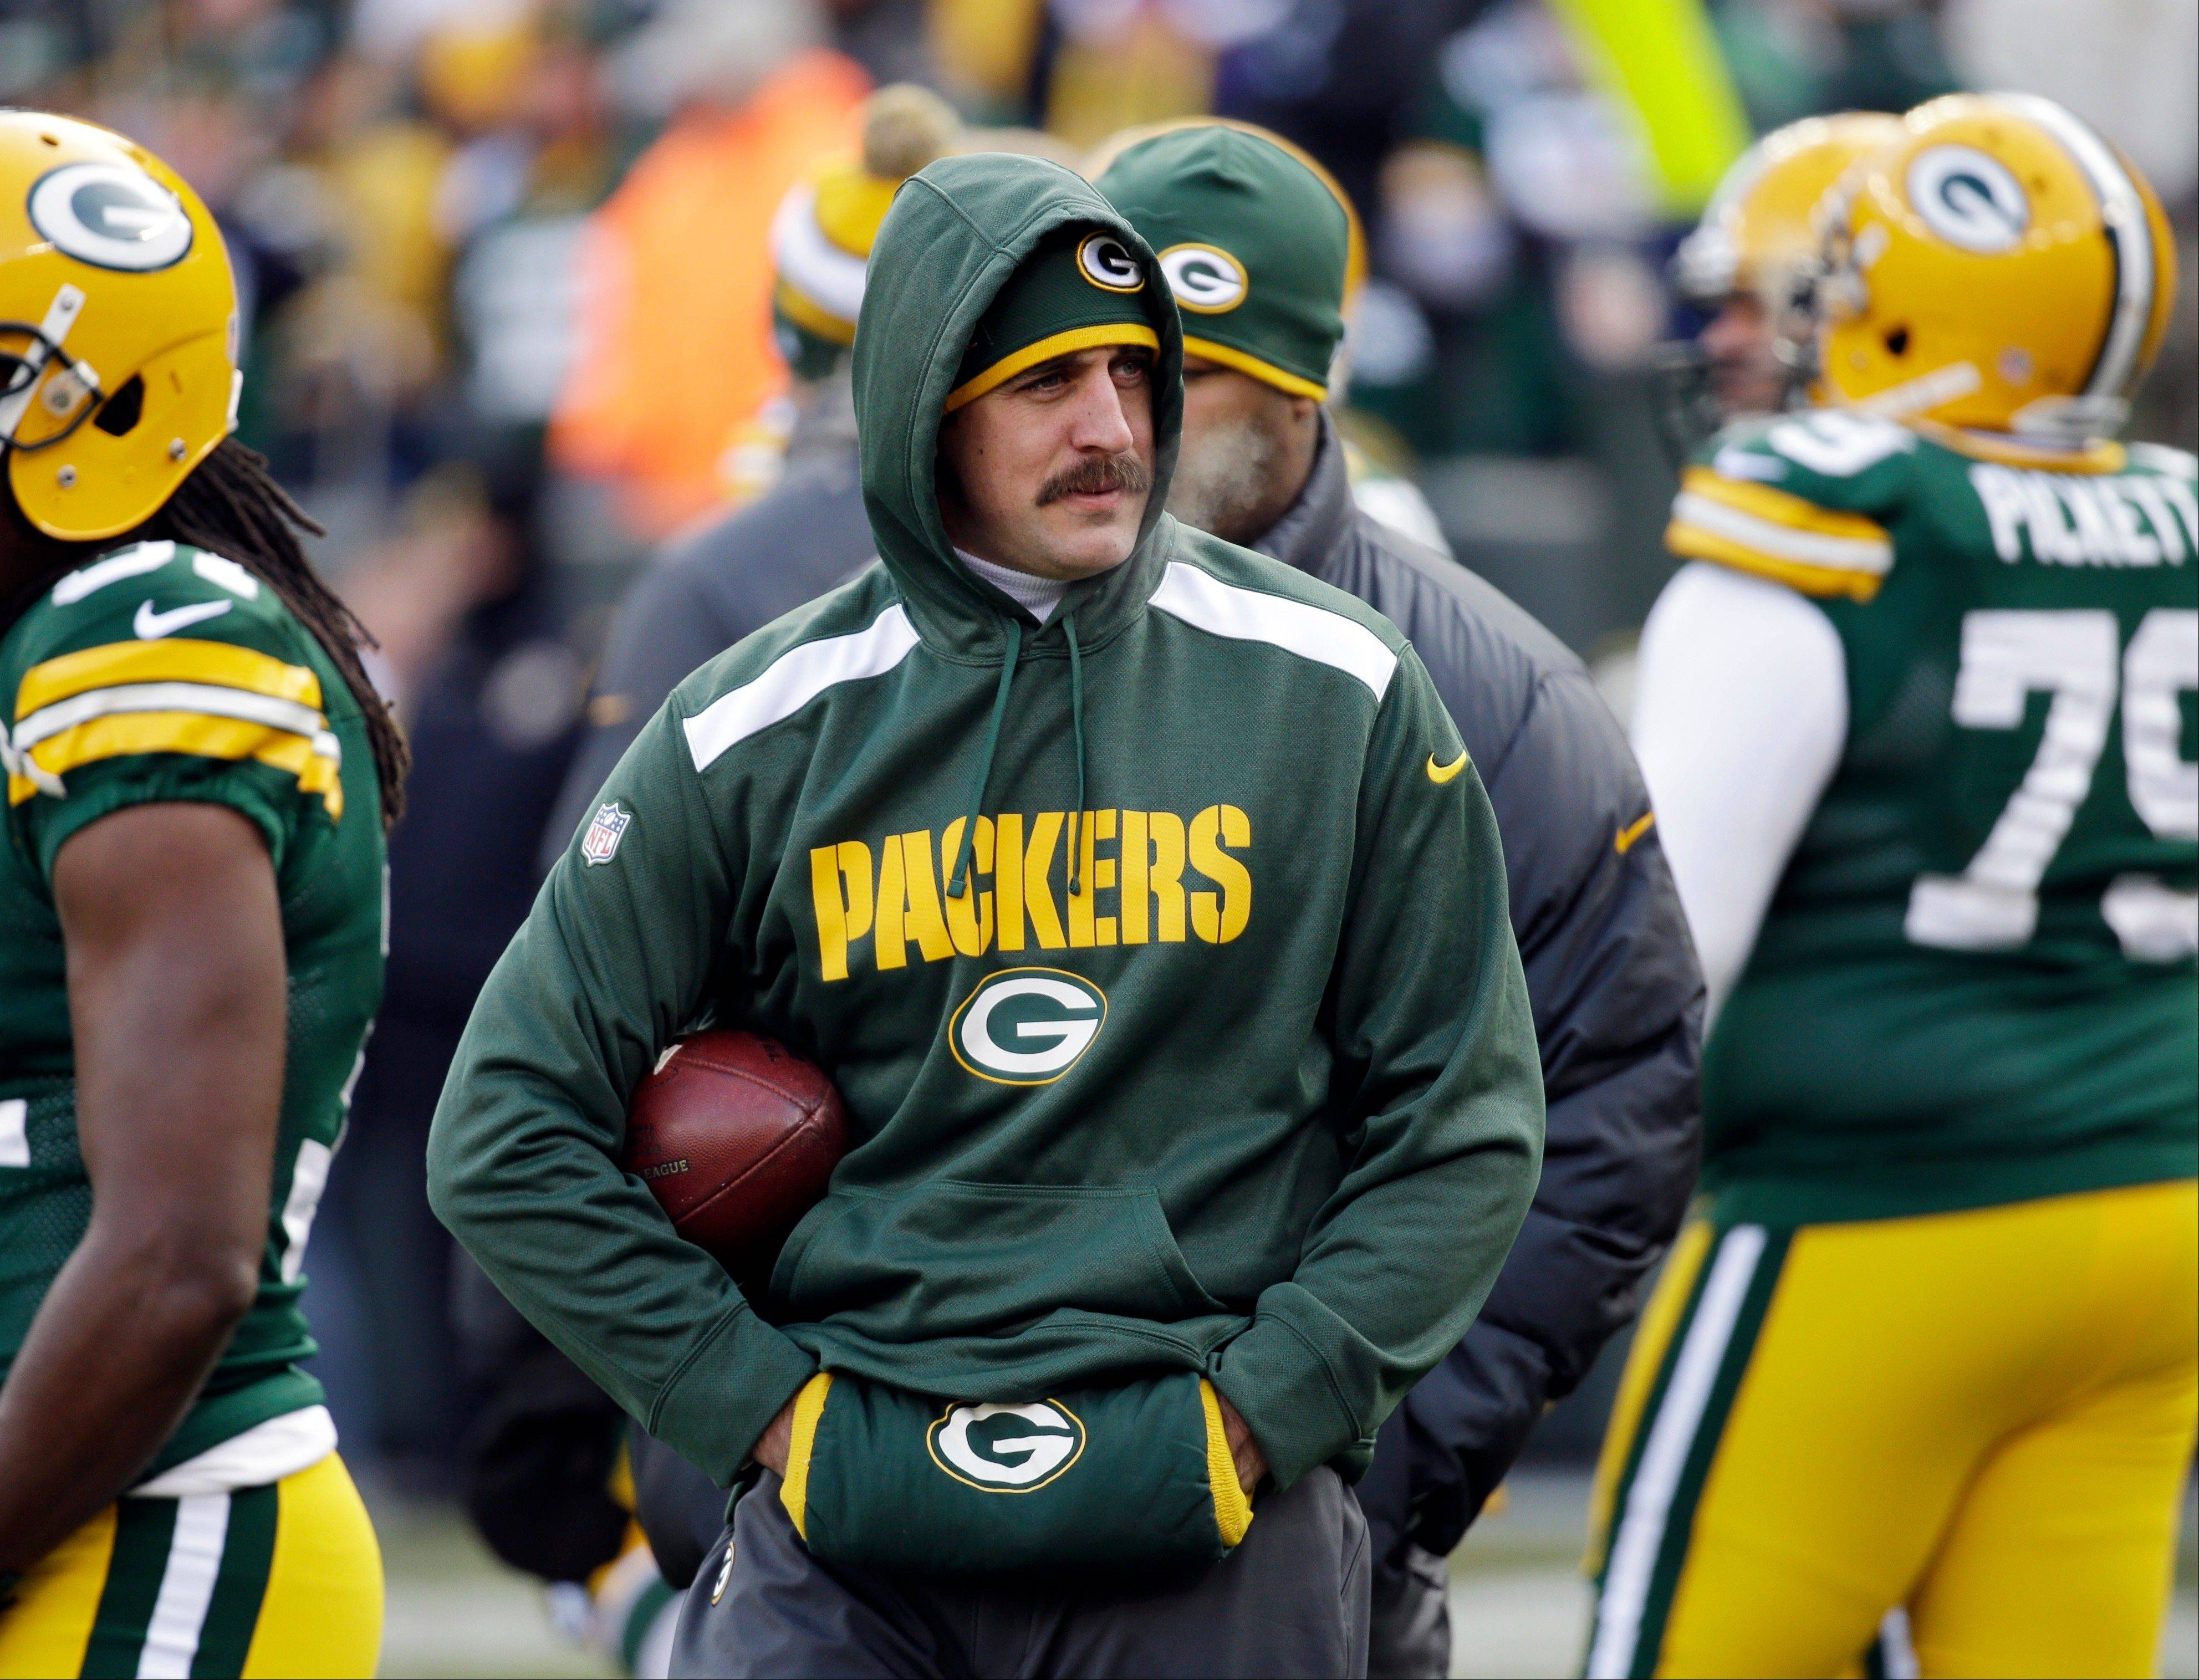 Packers quarterback Aaron Rodgers is taking off the hoodie and putting on the helmet for Sunday's NFC North matchup with the Bears.